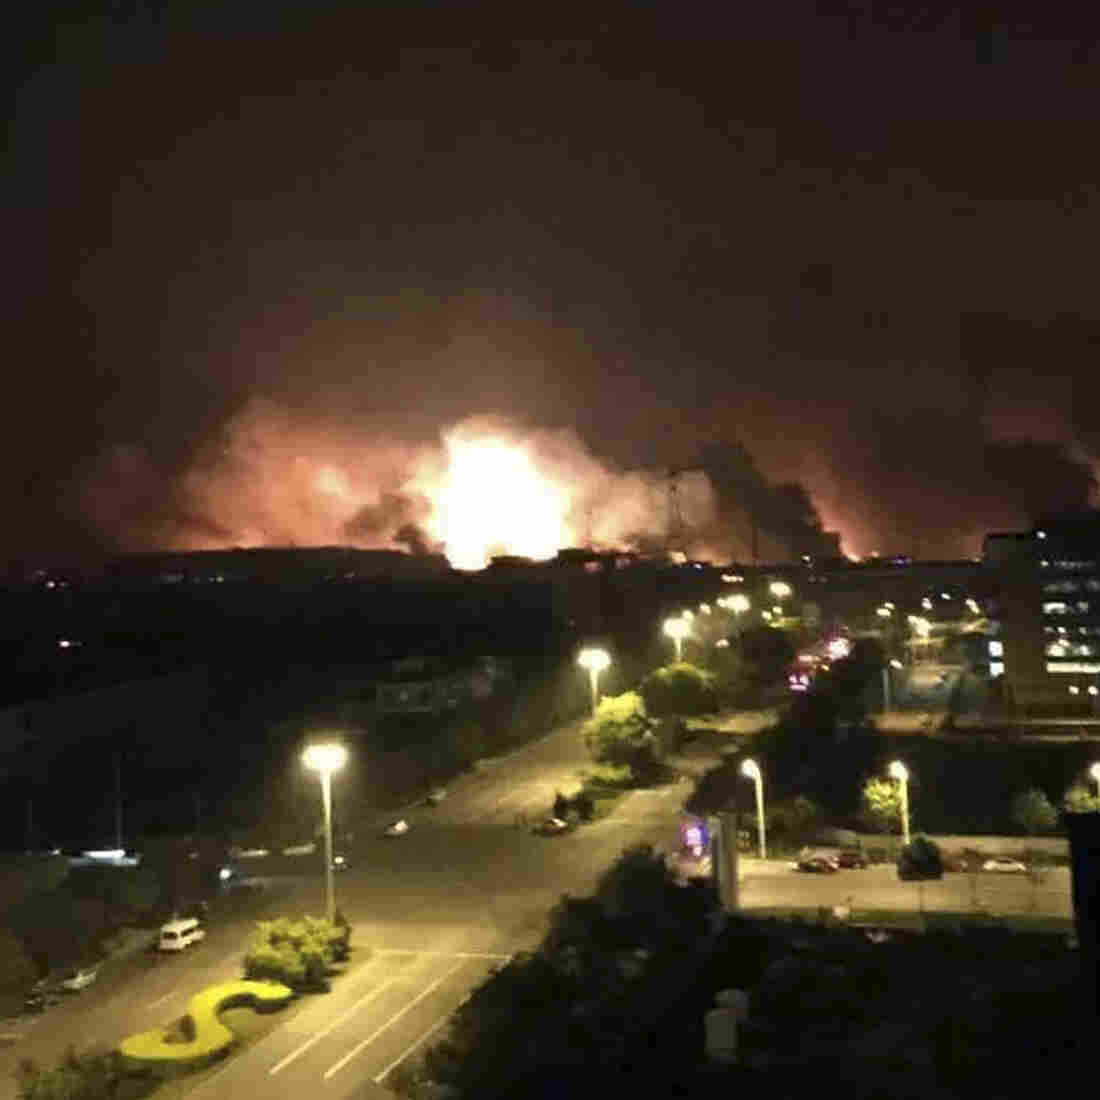 In this photo released by Xinhua News Agency smoke and fire erupt into the night sky after an explosion in north China's Tianjin Municipality early Thursday Aug. 13 local time.